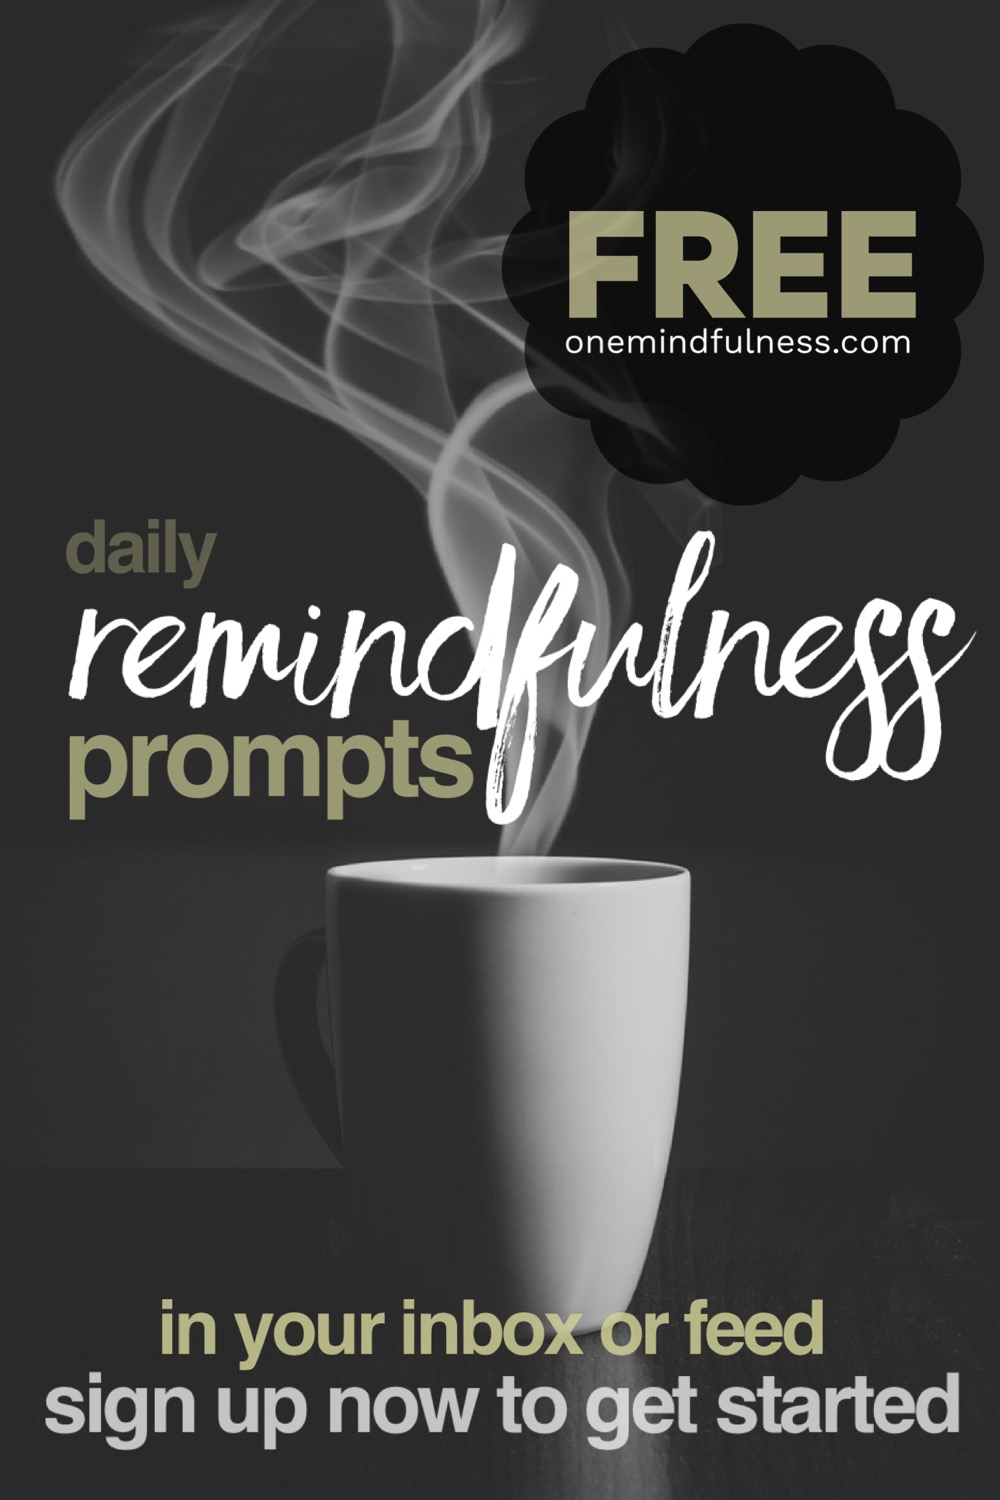 Sign up for daily Remindfulness Prompts in your inbox or feed